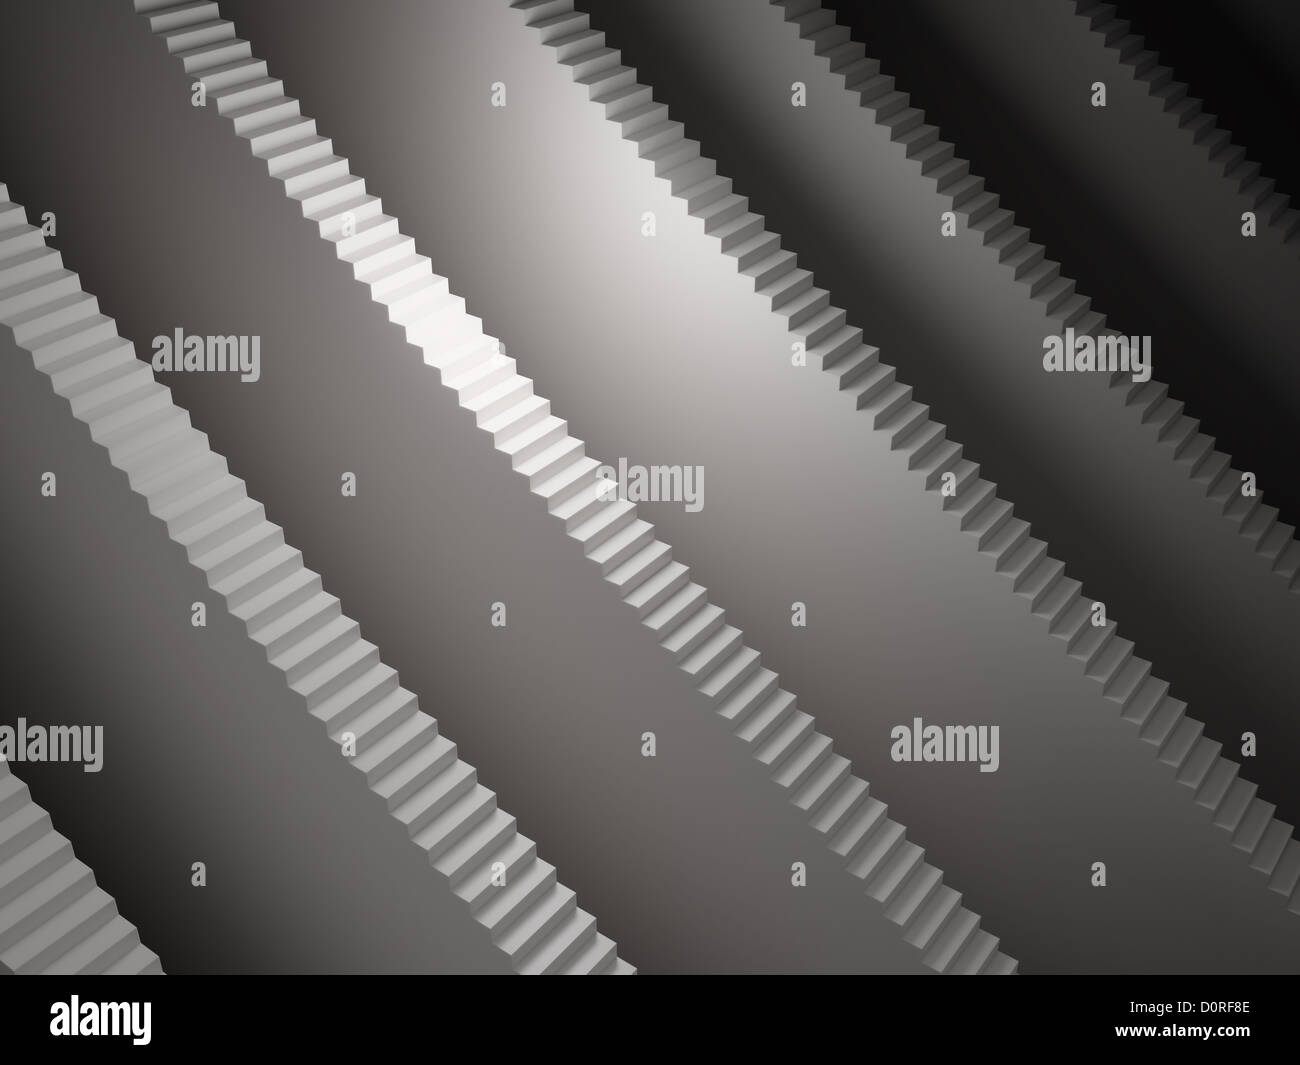 Abstract endless staircases - Stock Image